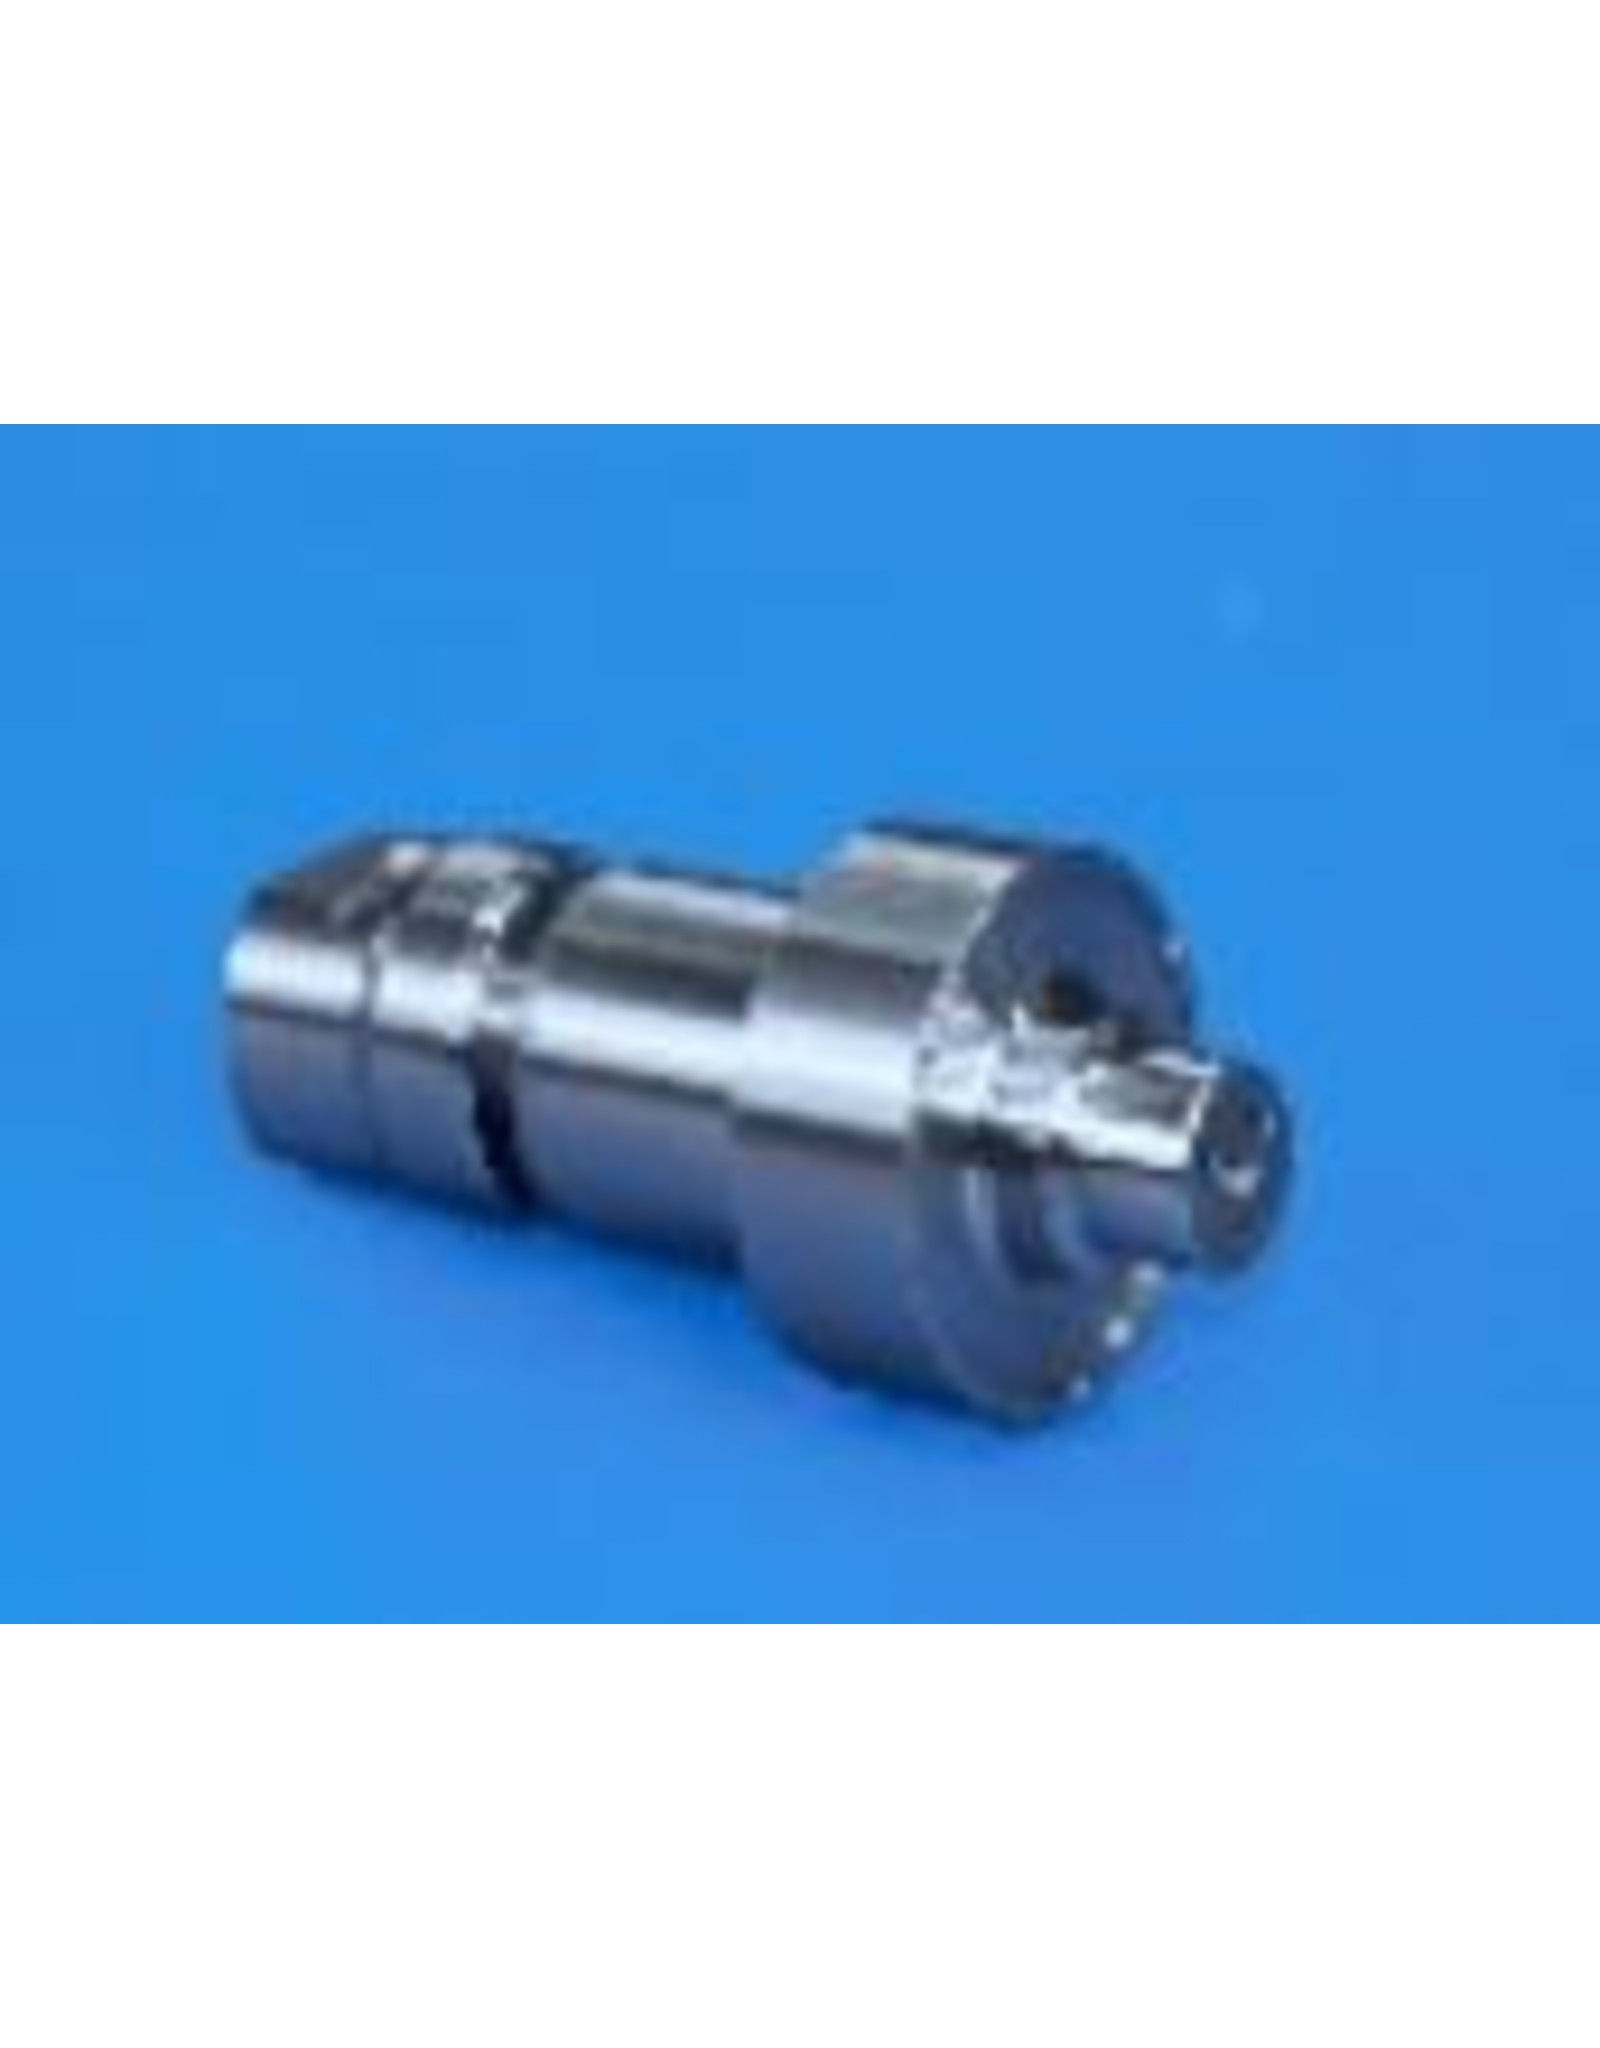 KMT Style Check Valve (Seal Head) Body